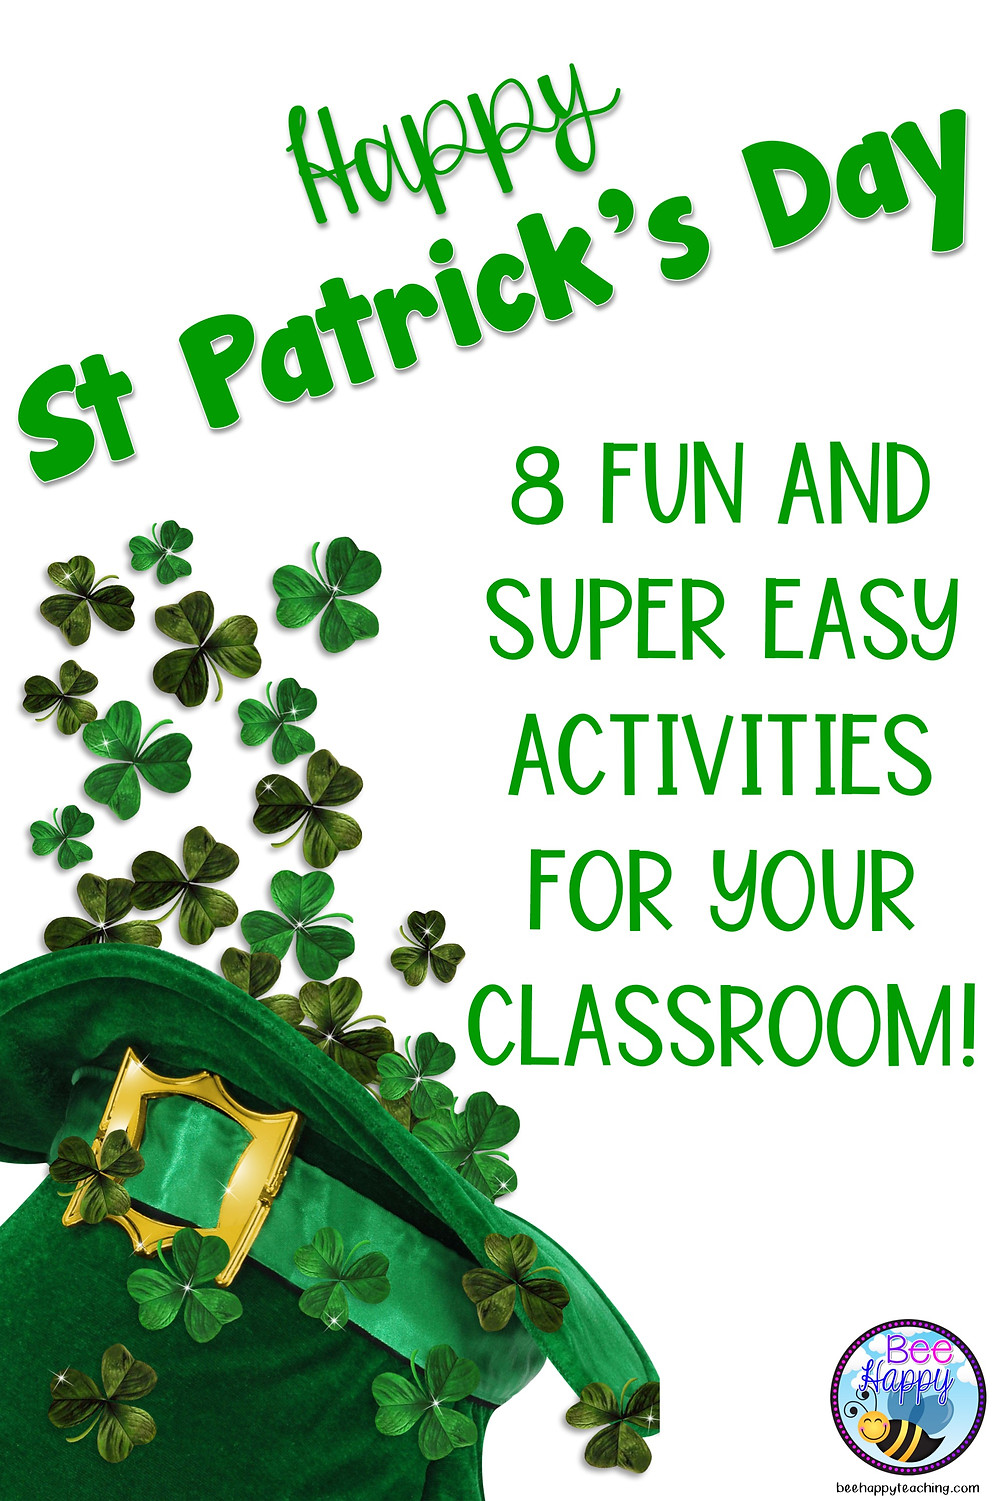 St Patrick's Day activities for the classroom